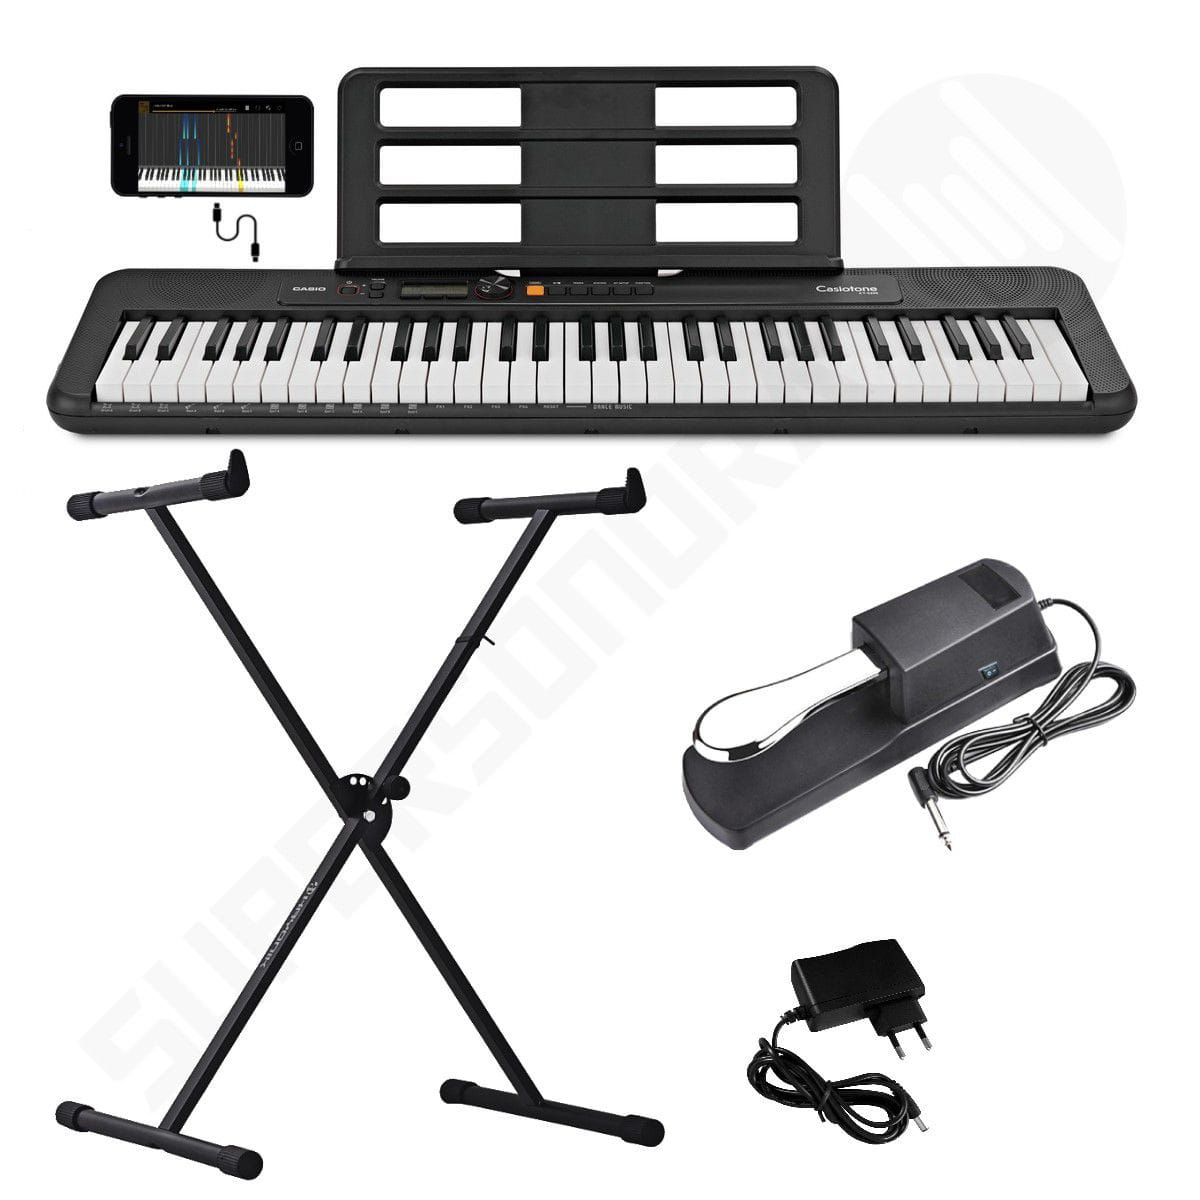 Kit Teclado Musical CASIOTONE CT S200 CASIO Preto Aplicativo Chordana Play + Suporte X + Pedal Sustain